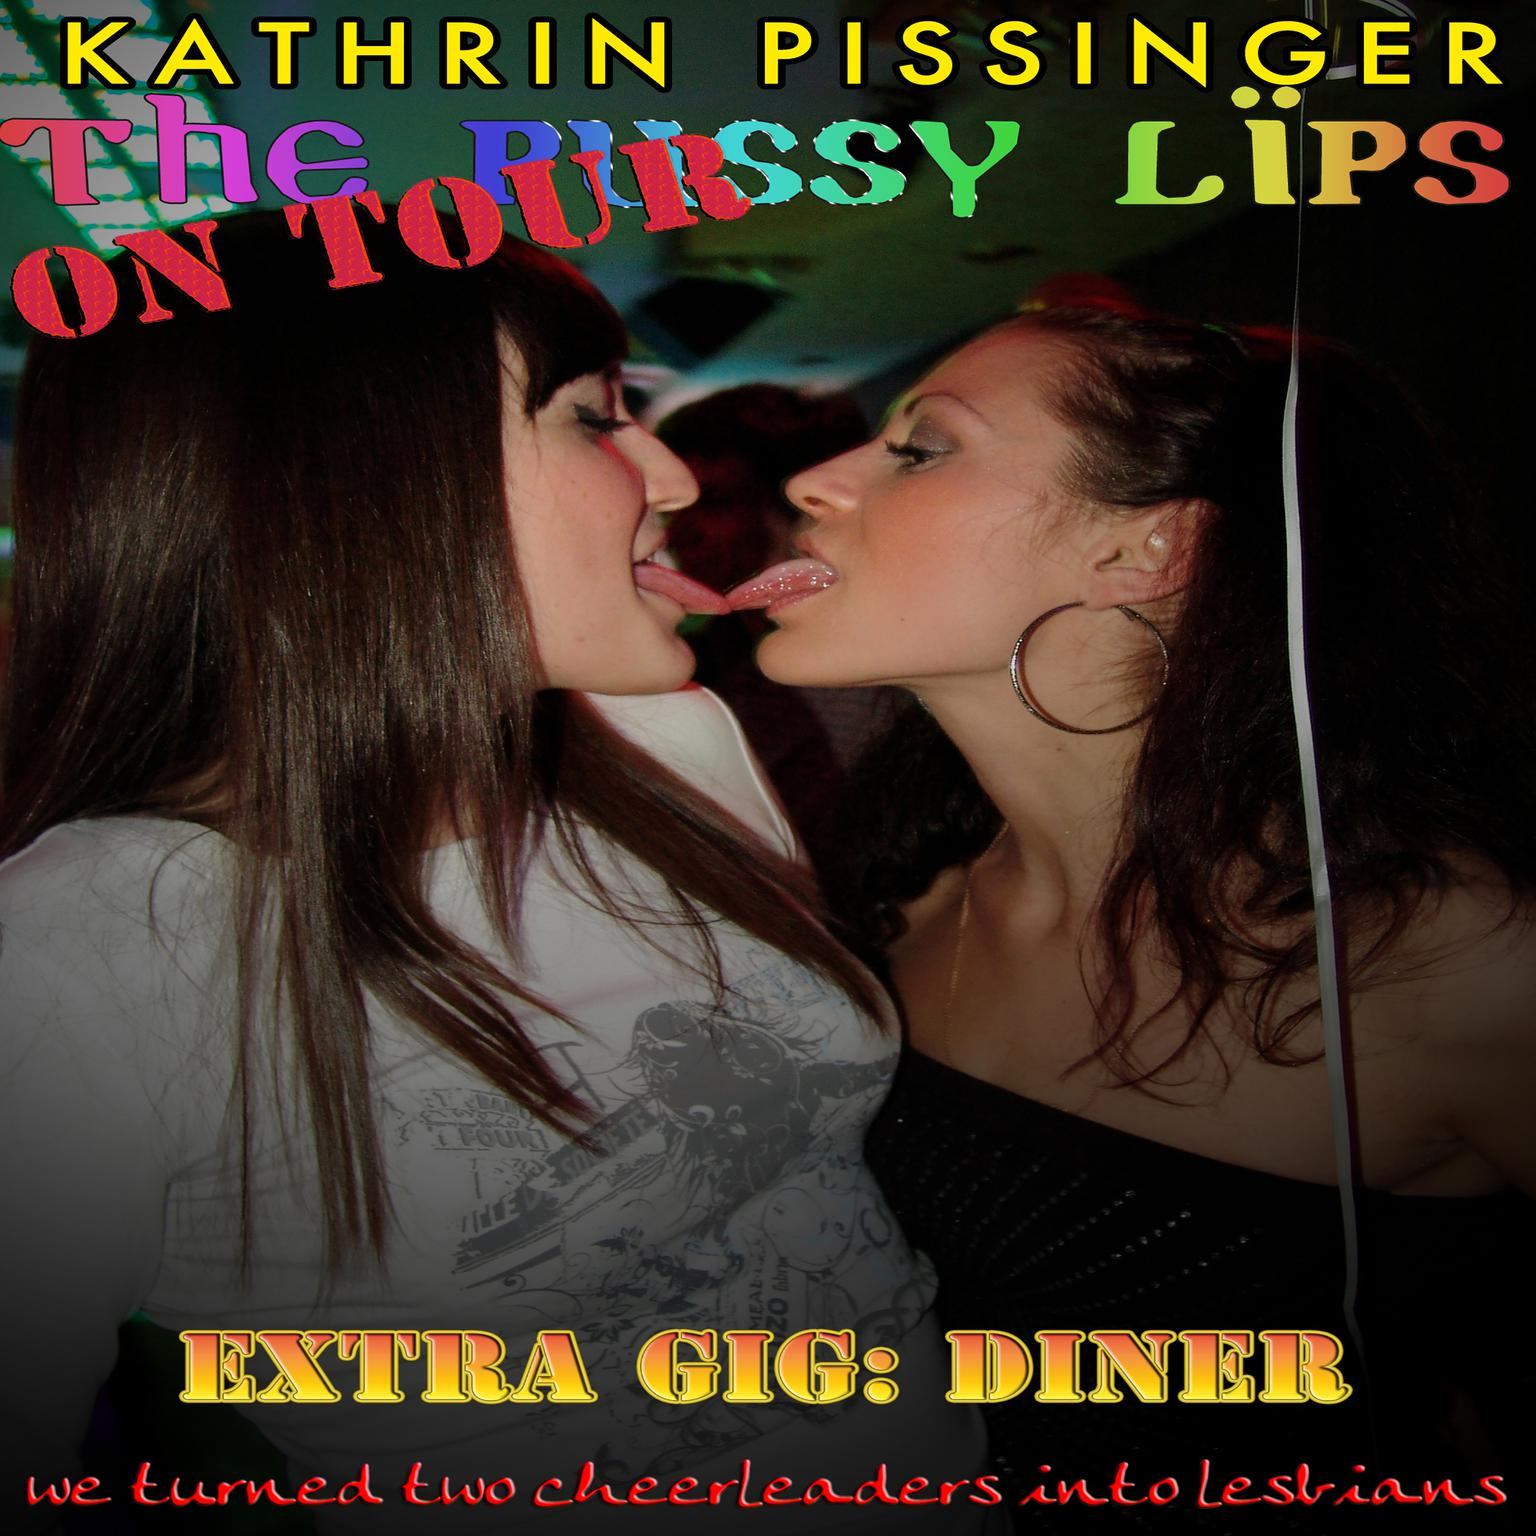 Extra Gig: Diner: we turned two cheerleaders into lesbians Audiobook, by Kathrin Pissinger